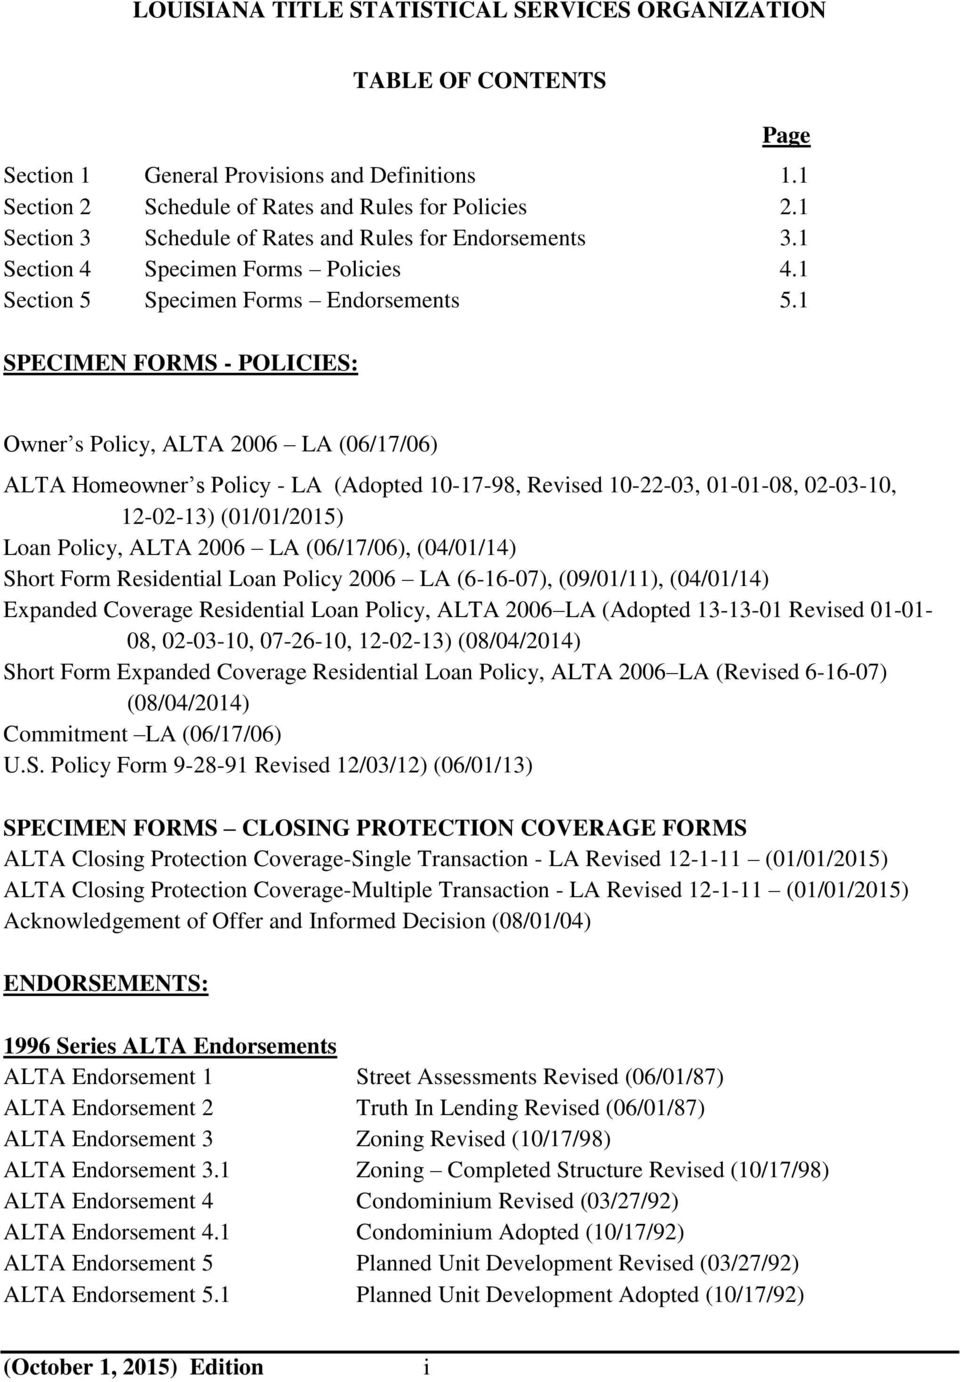 1 SPECIMEN FORMS - POLICIES: Owner s Policy, ALTA 2006 LA (06/17/06) ALTA Homeowner s Policy - LA (Adopted 10-17-98, Revised 10-22-03, 01-01-08, 02-03-10, 12-02-13) (01/01/2015) Loan Policy, ALTA